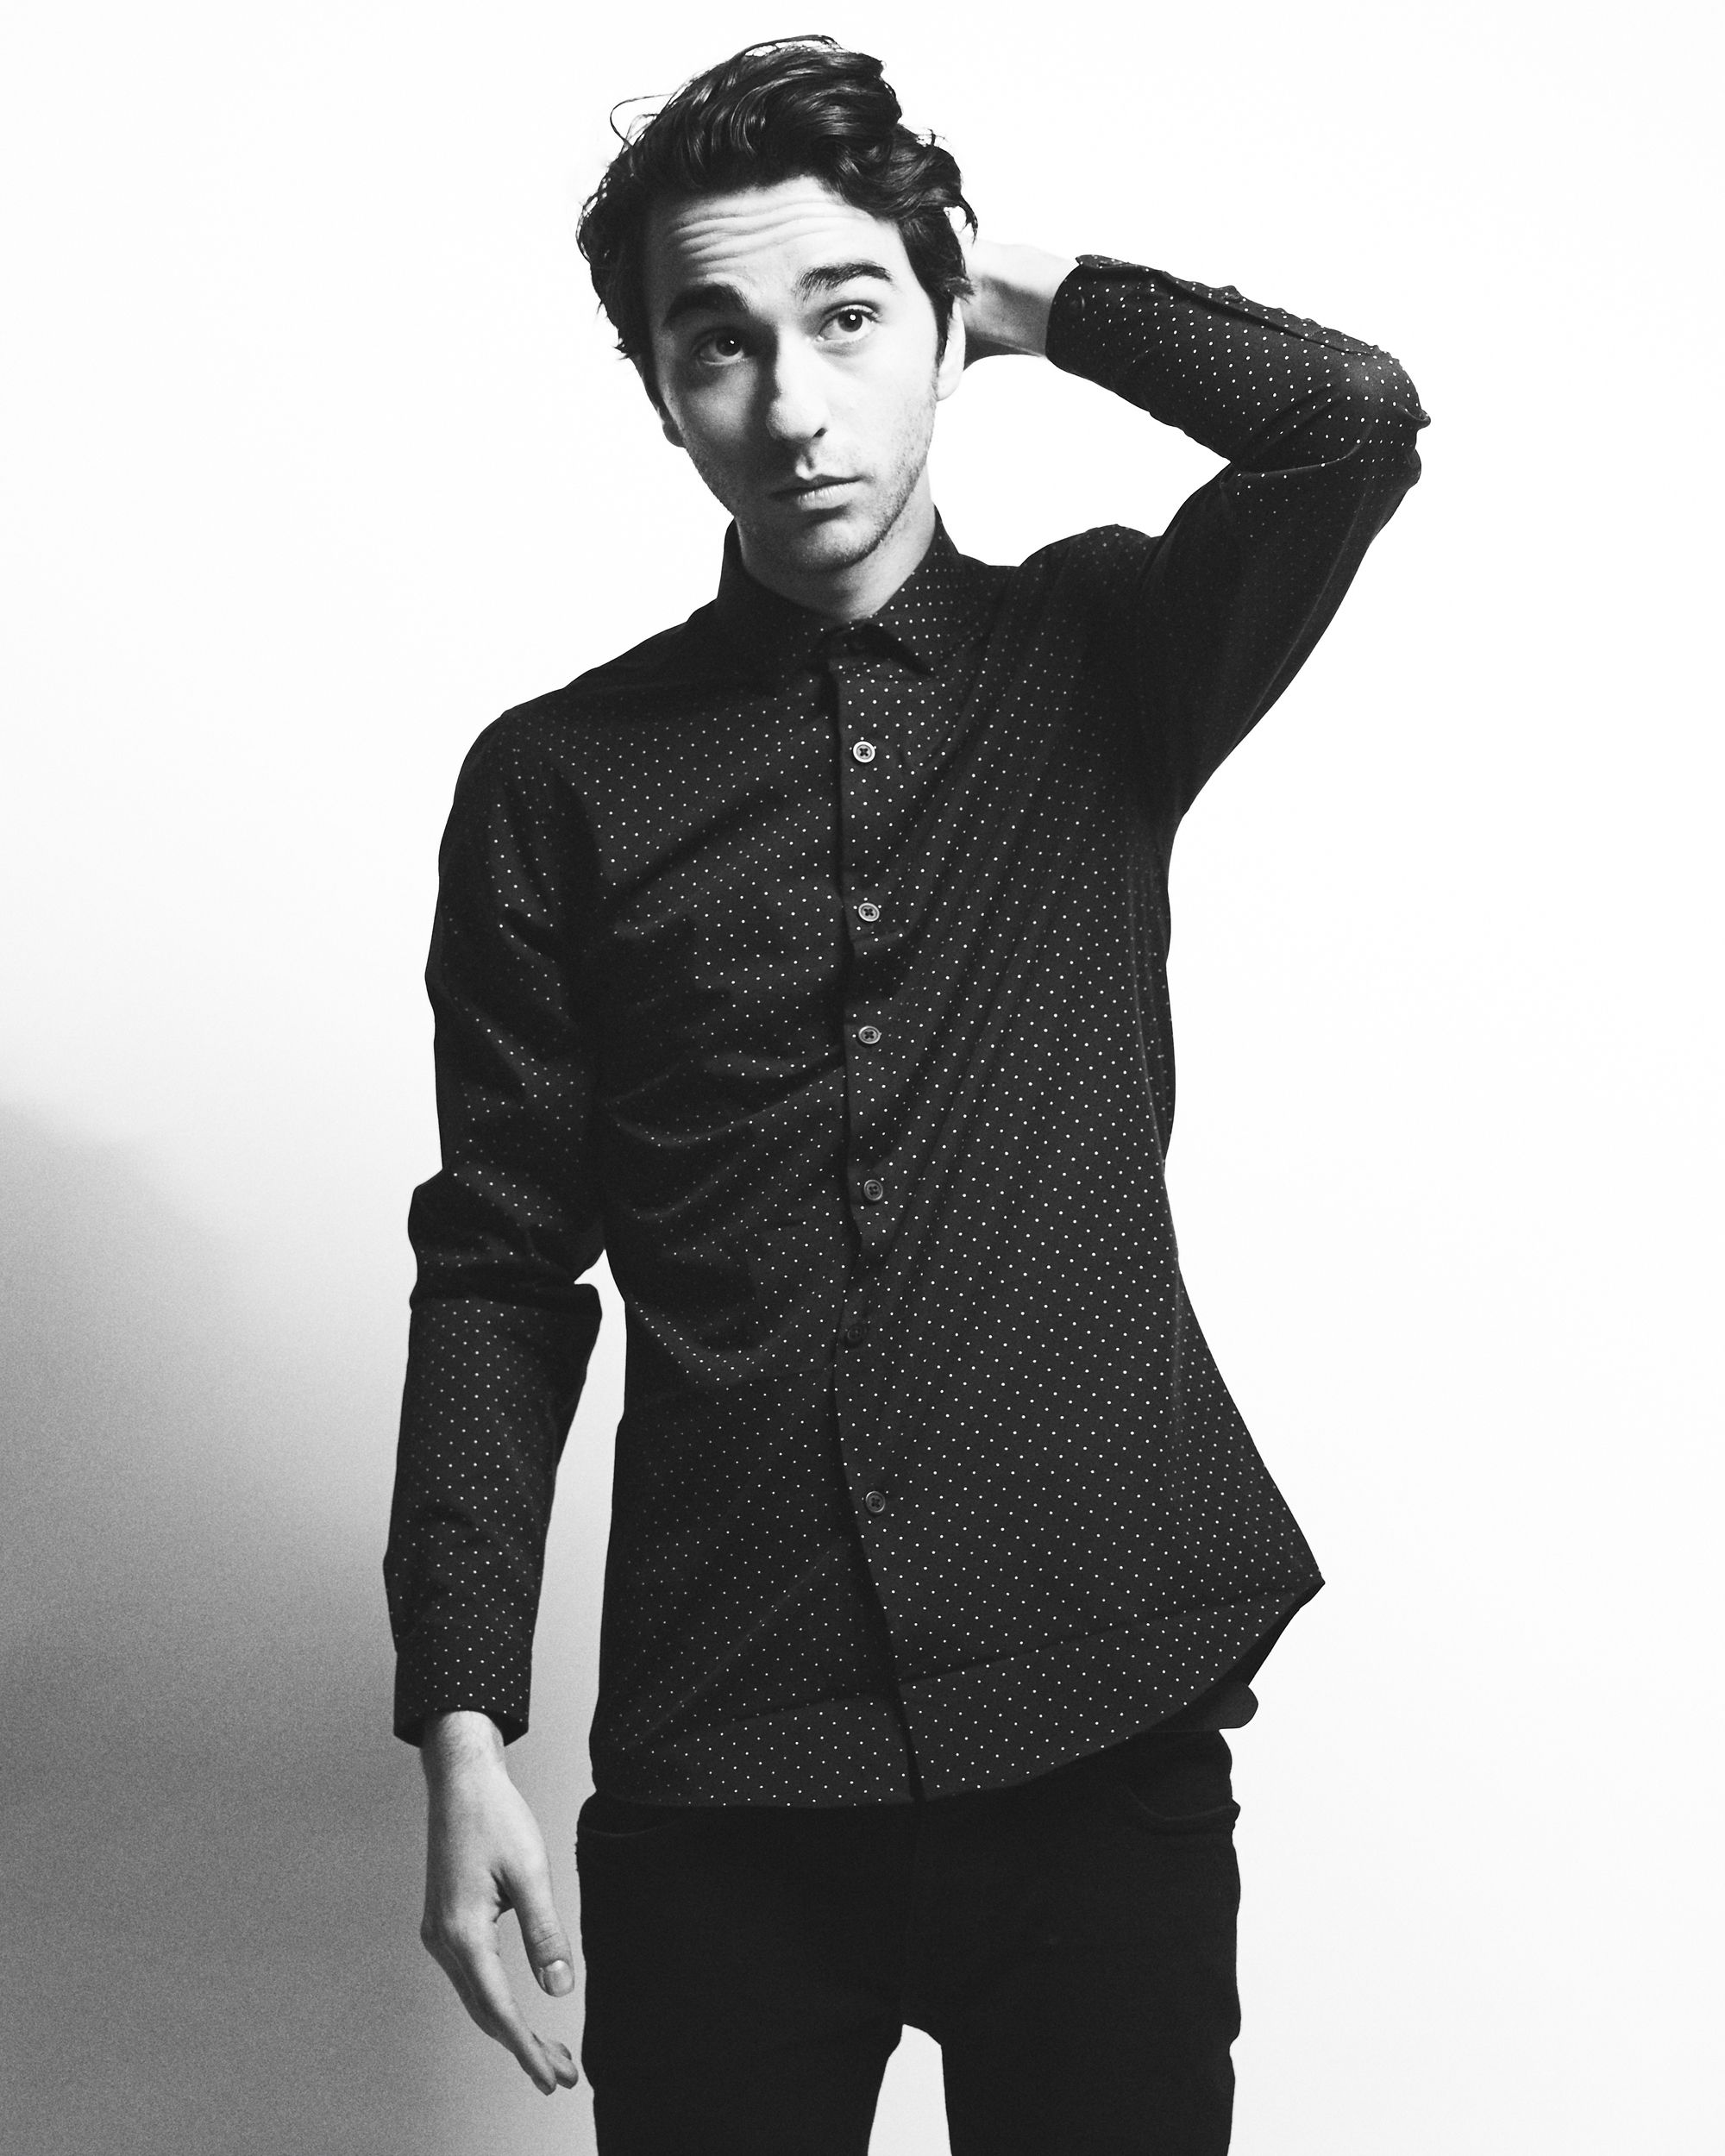 alex wolff young